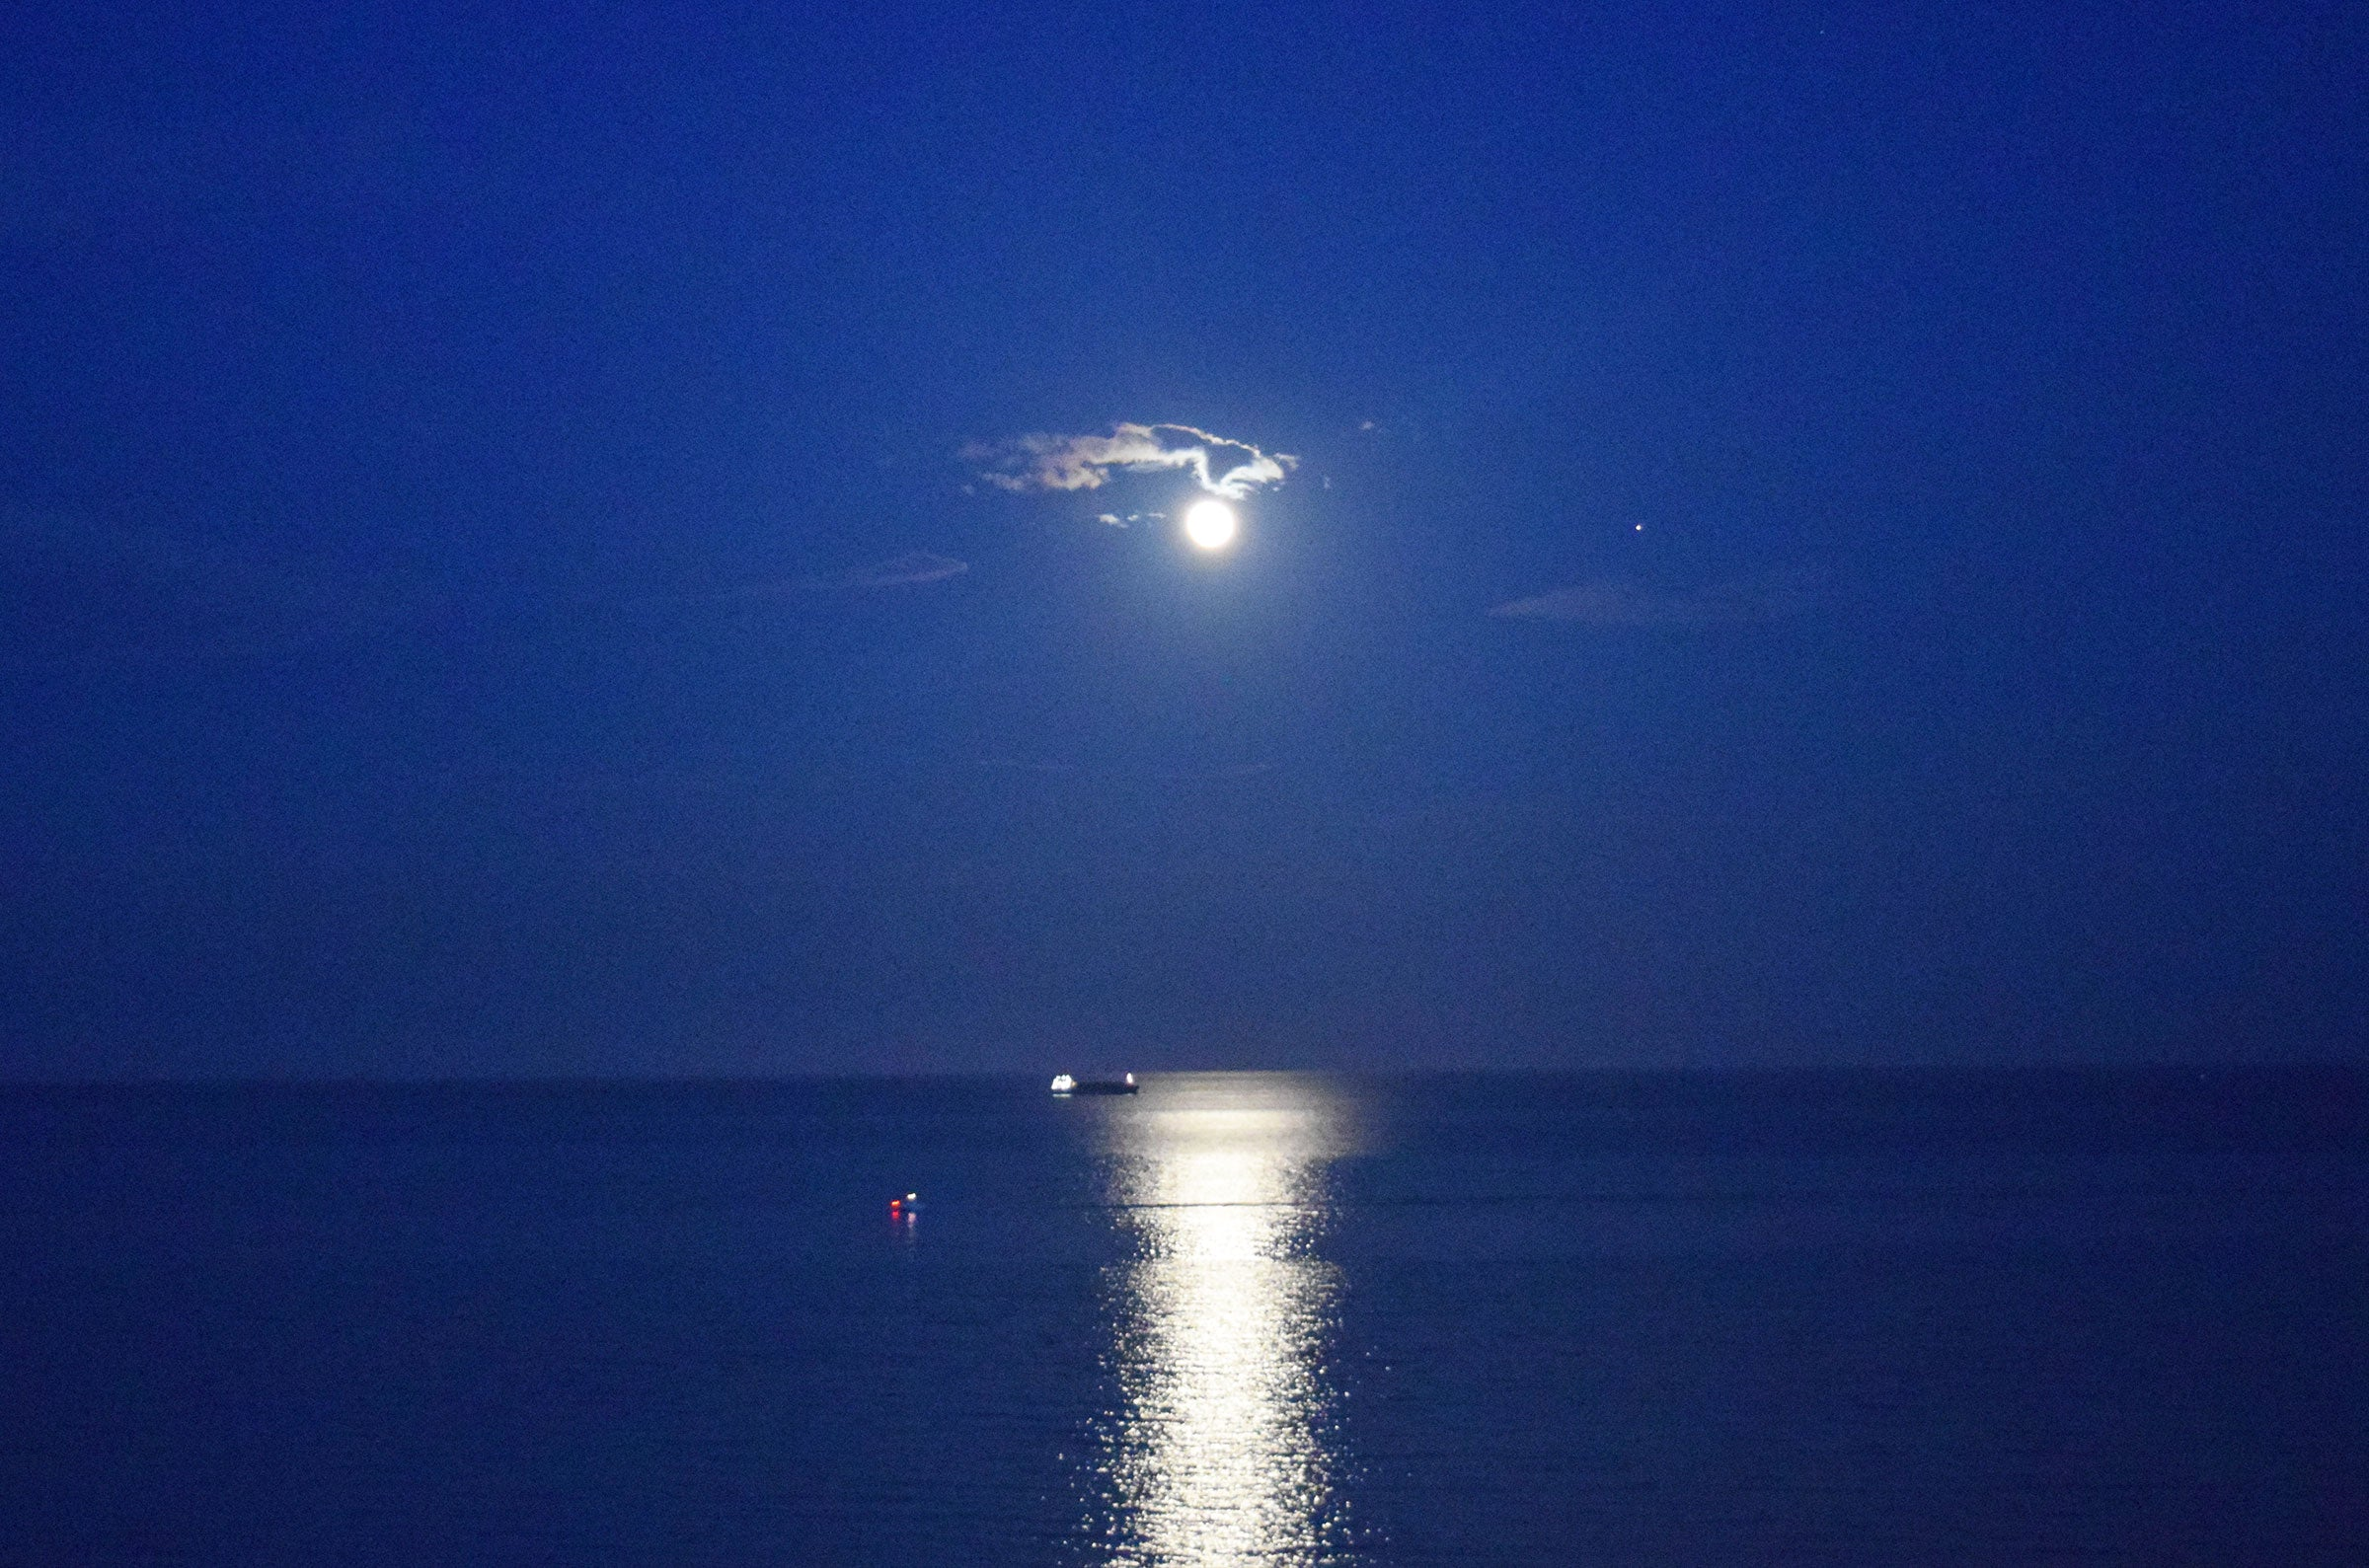 Moonlight over the Atlantic Oceon on South Beach by Kate Stoltz